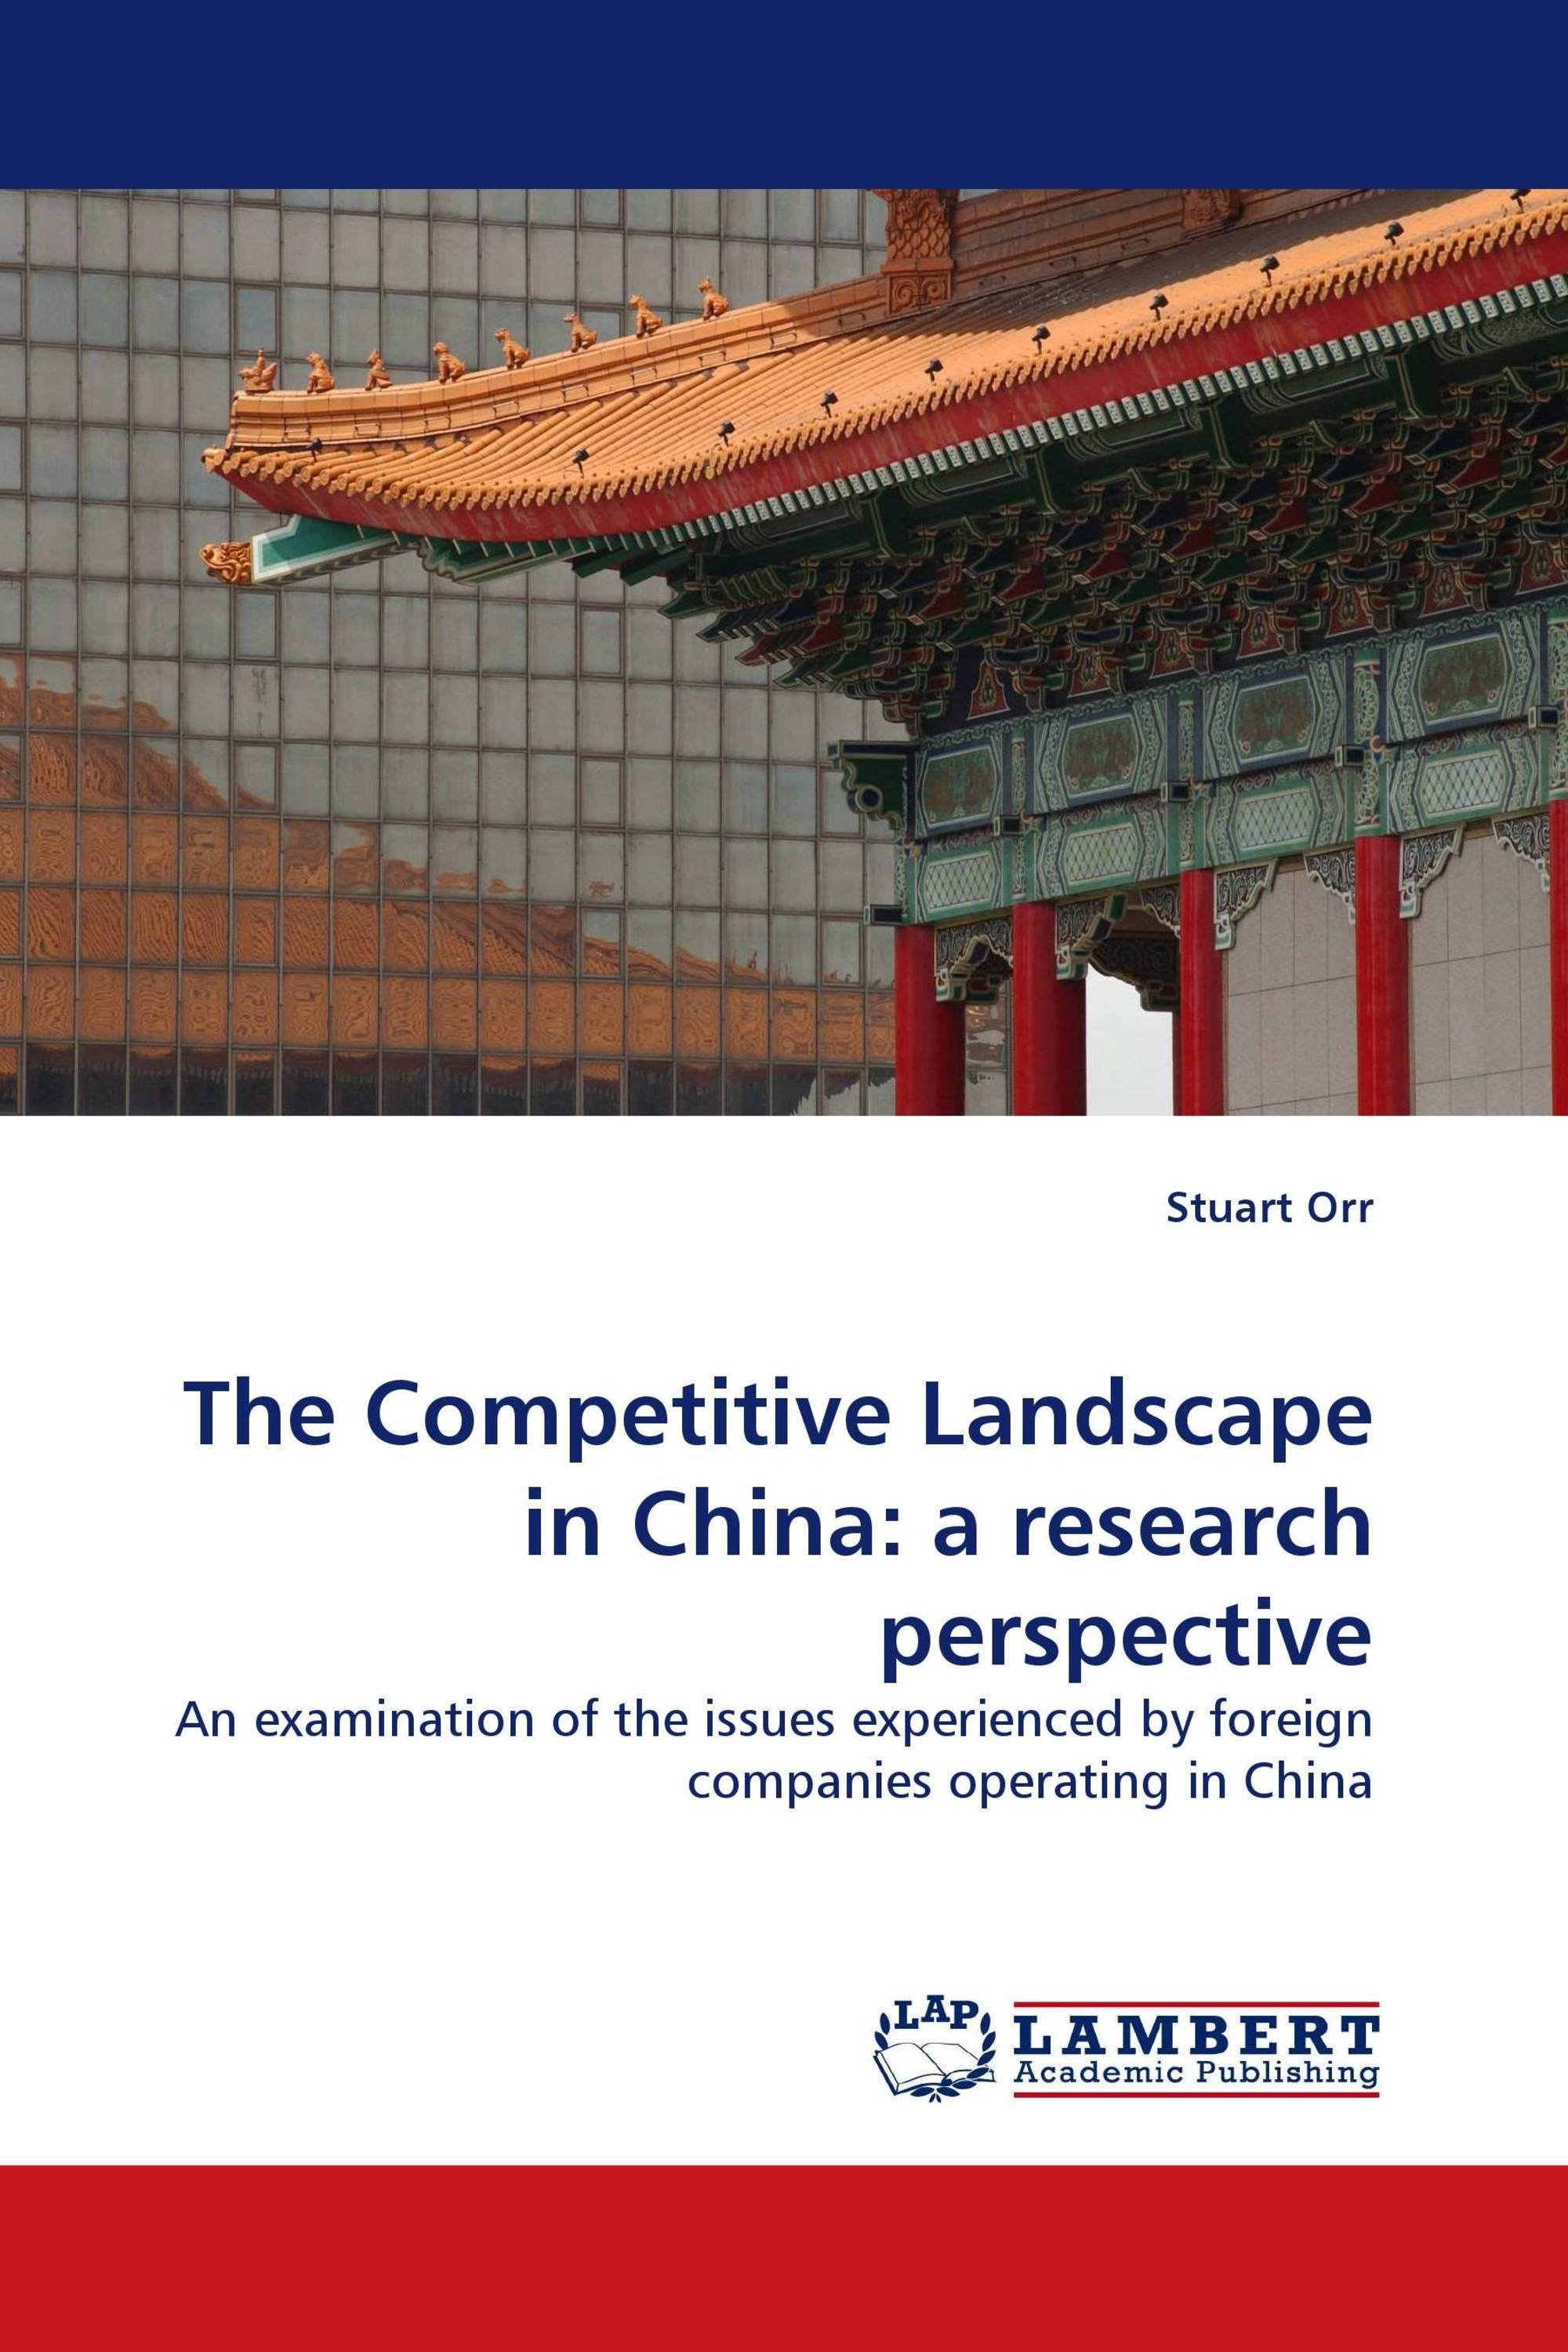 The Competitive Landscape in China: a research perspective